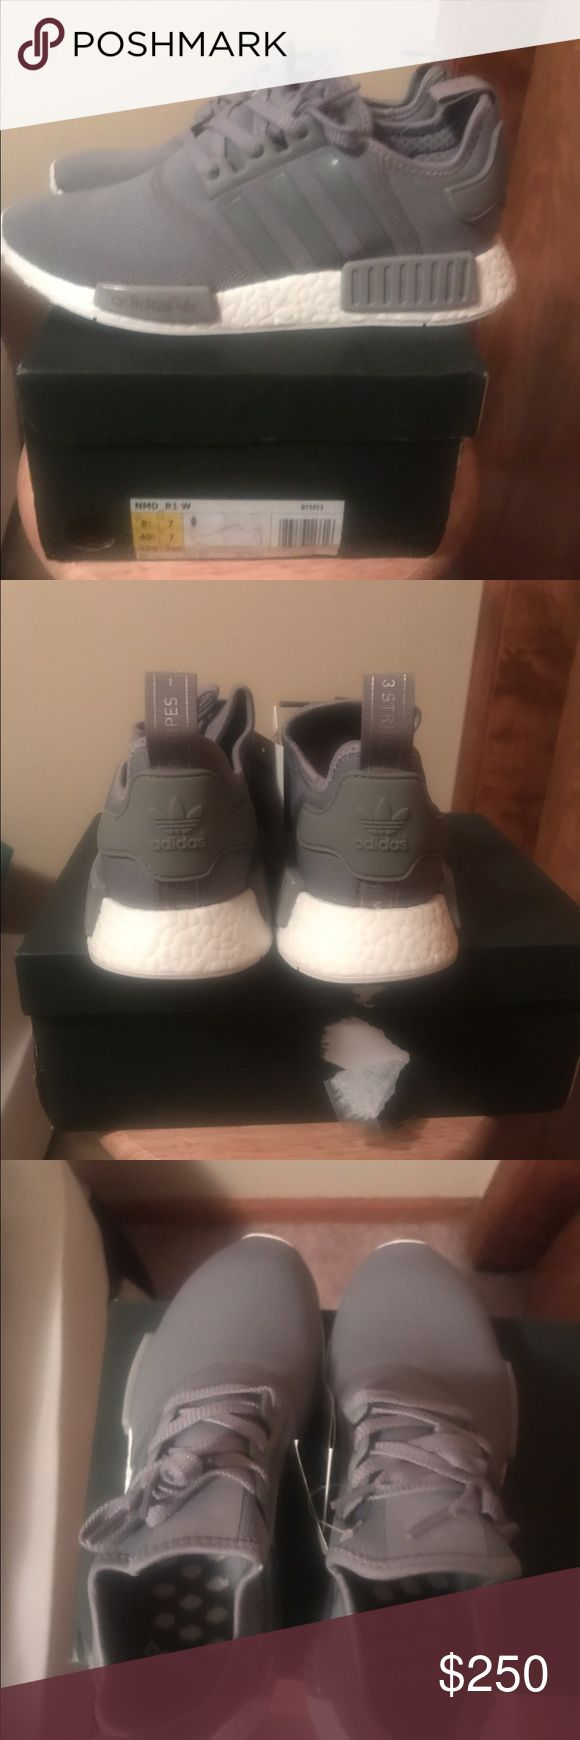 Adidas NMD Women's Size 7.5 or men's 6.5 Very nice looking shoe and can be worn by a man or woman.  Ignore my prices on this shoe or any other pair listed.  If interested please msg me at markblank00 @yahoo.com Adidas Shoes Athletic Shoes